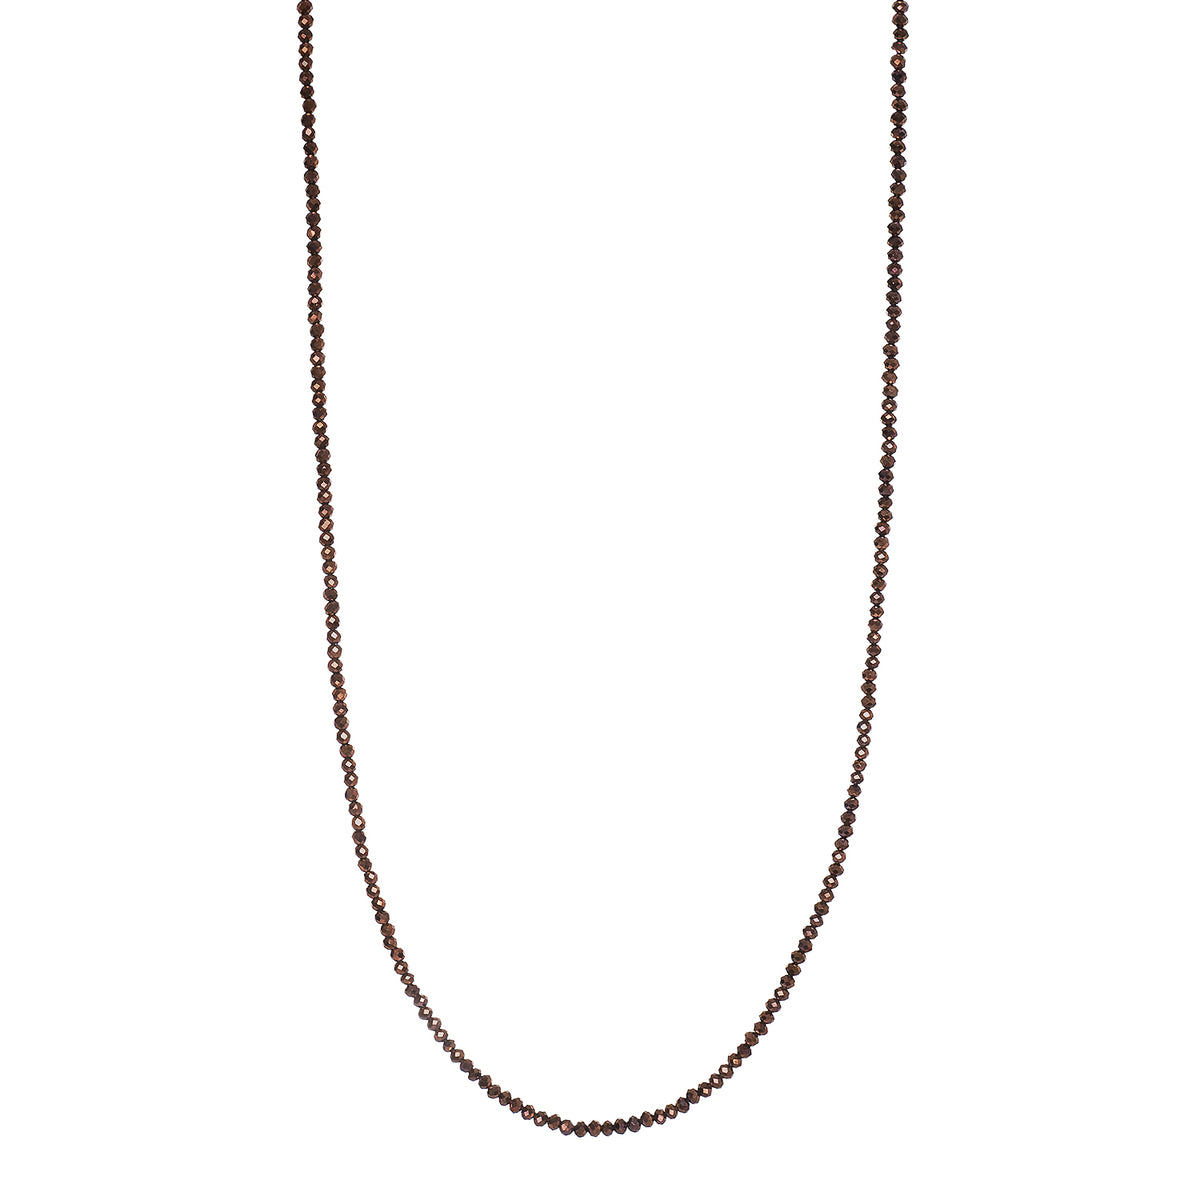 ROSETTA THREE-STRAND NECKLACE